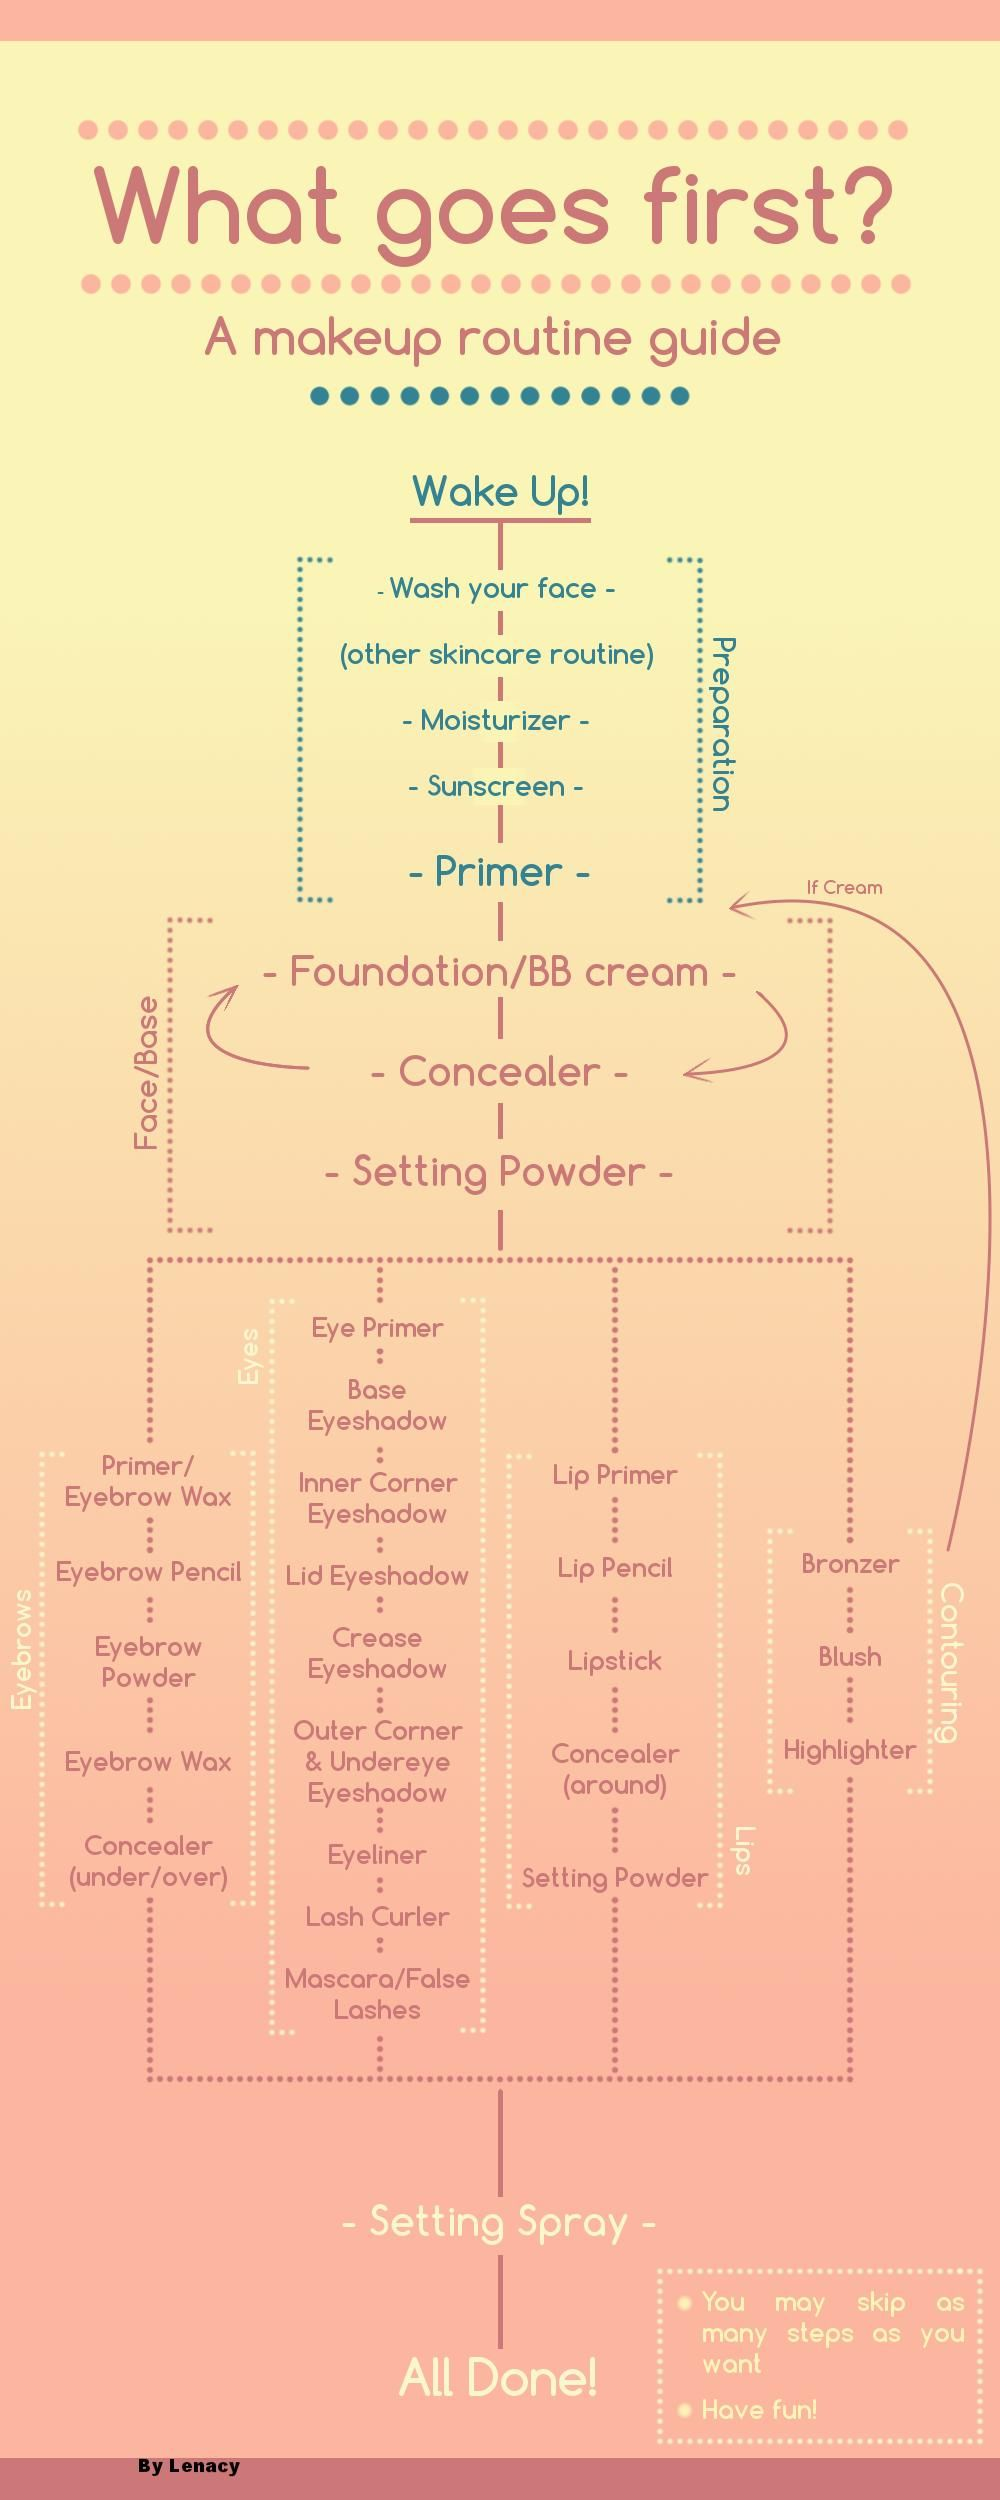 incredibly useful makeup order flowchart by u lenacy on reddit for those who aren t sure what goes first  [ 1000 x 2500 Pixel ]